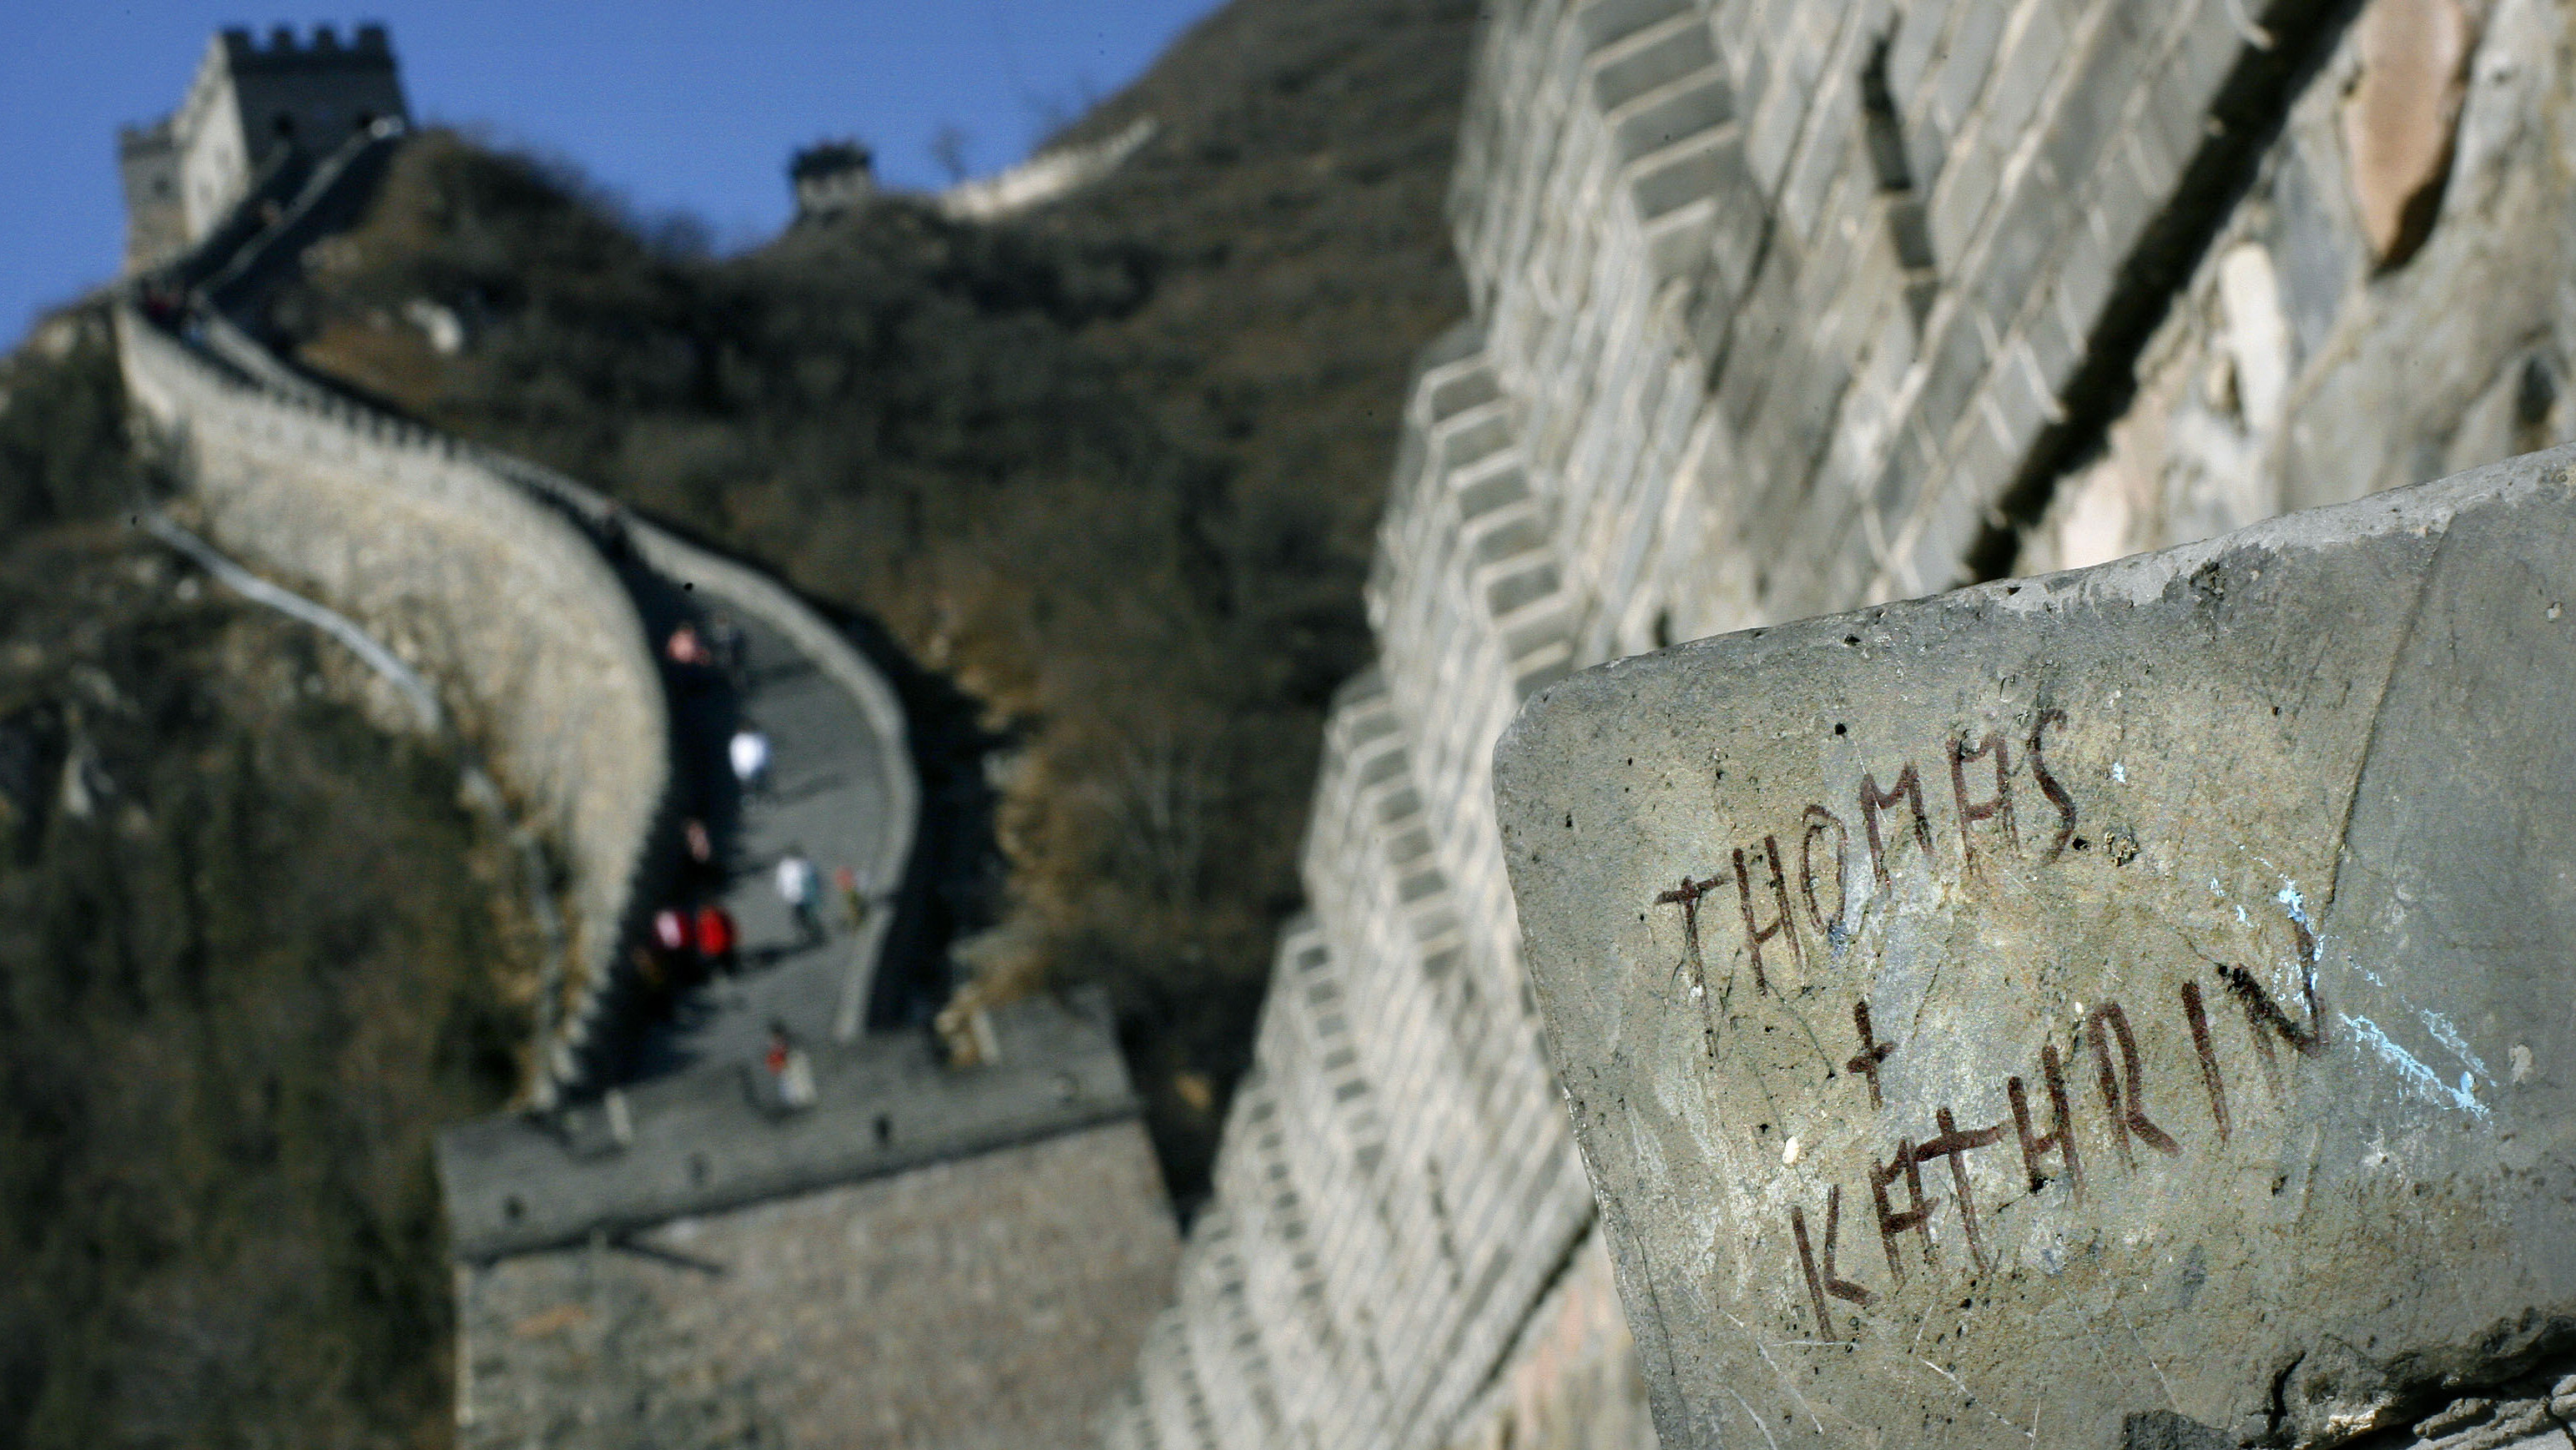 For Those Itching To Etch, Great Wall Now Has A Graffiti Zone